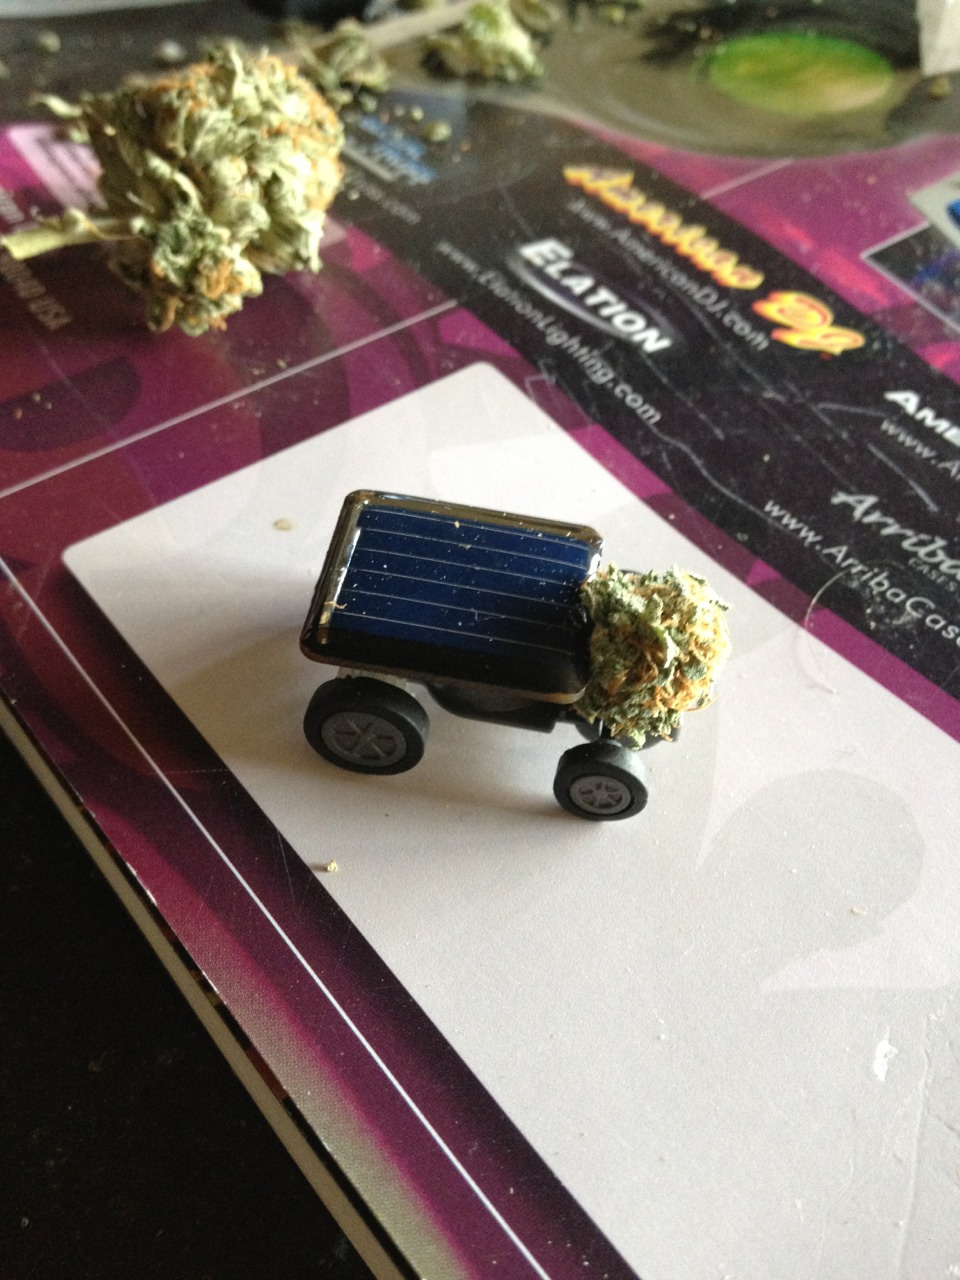 Solar Power Weed Delivery